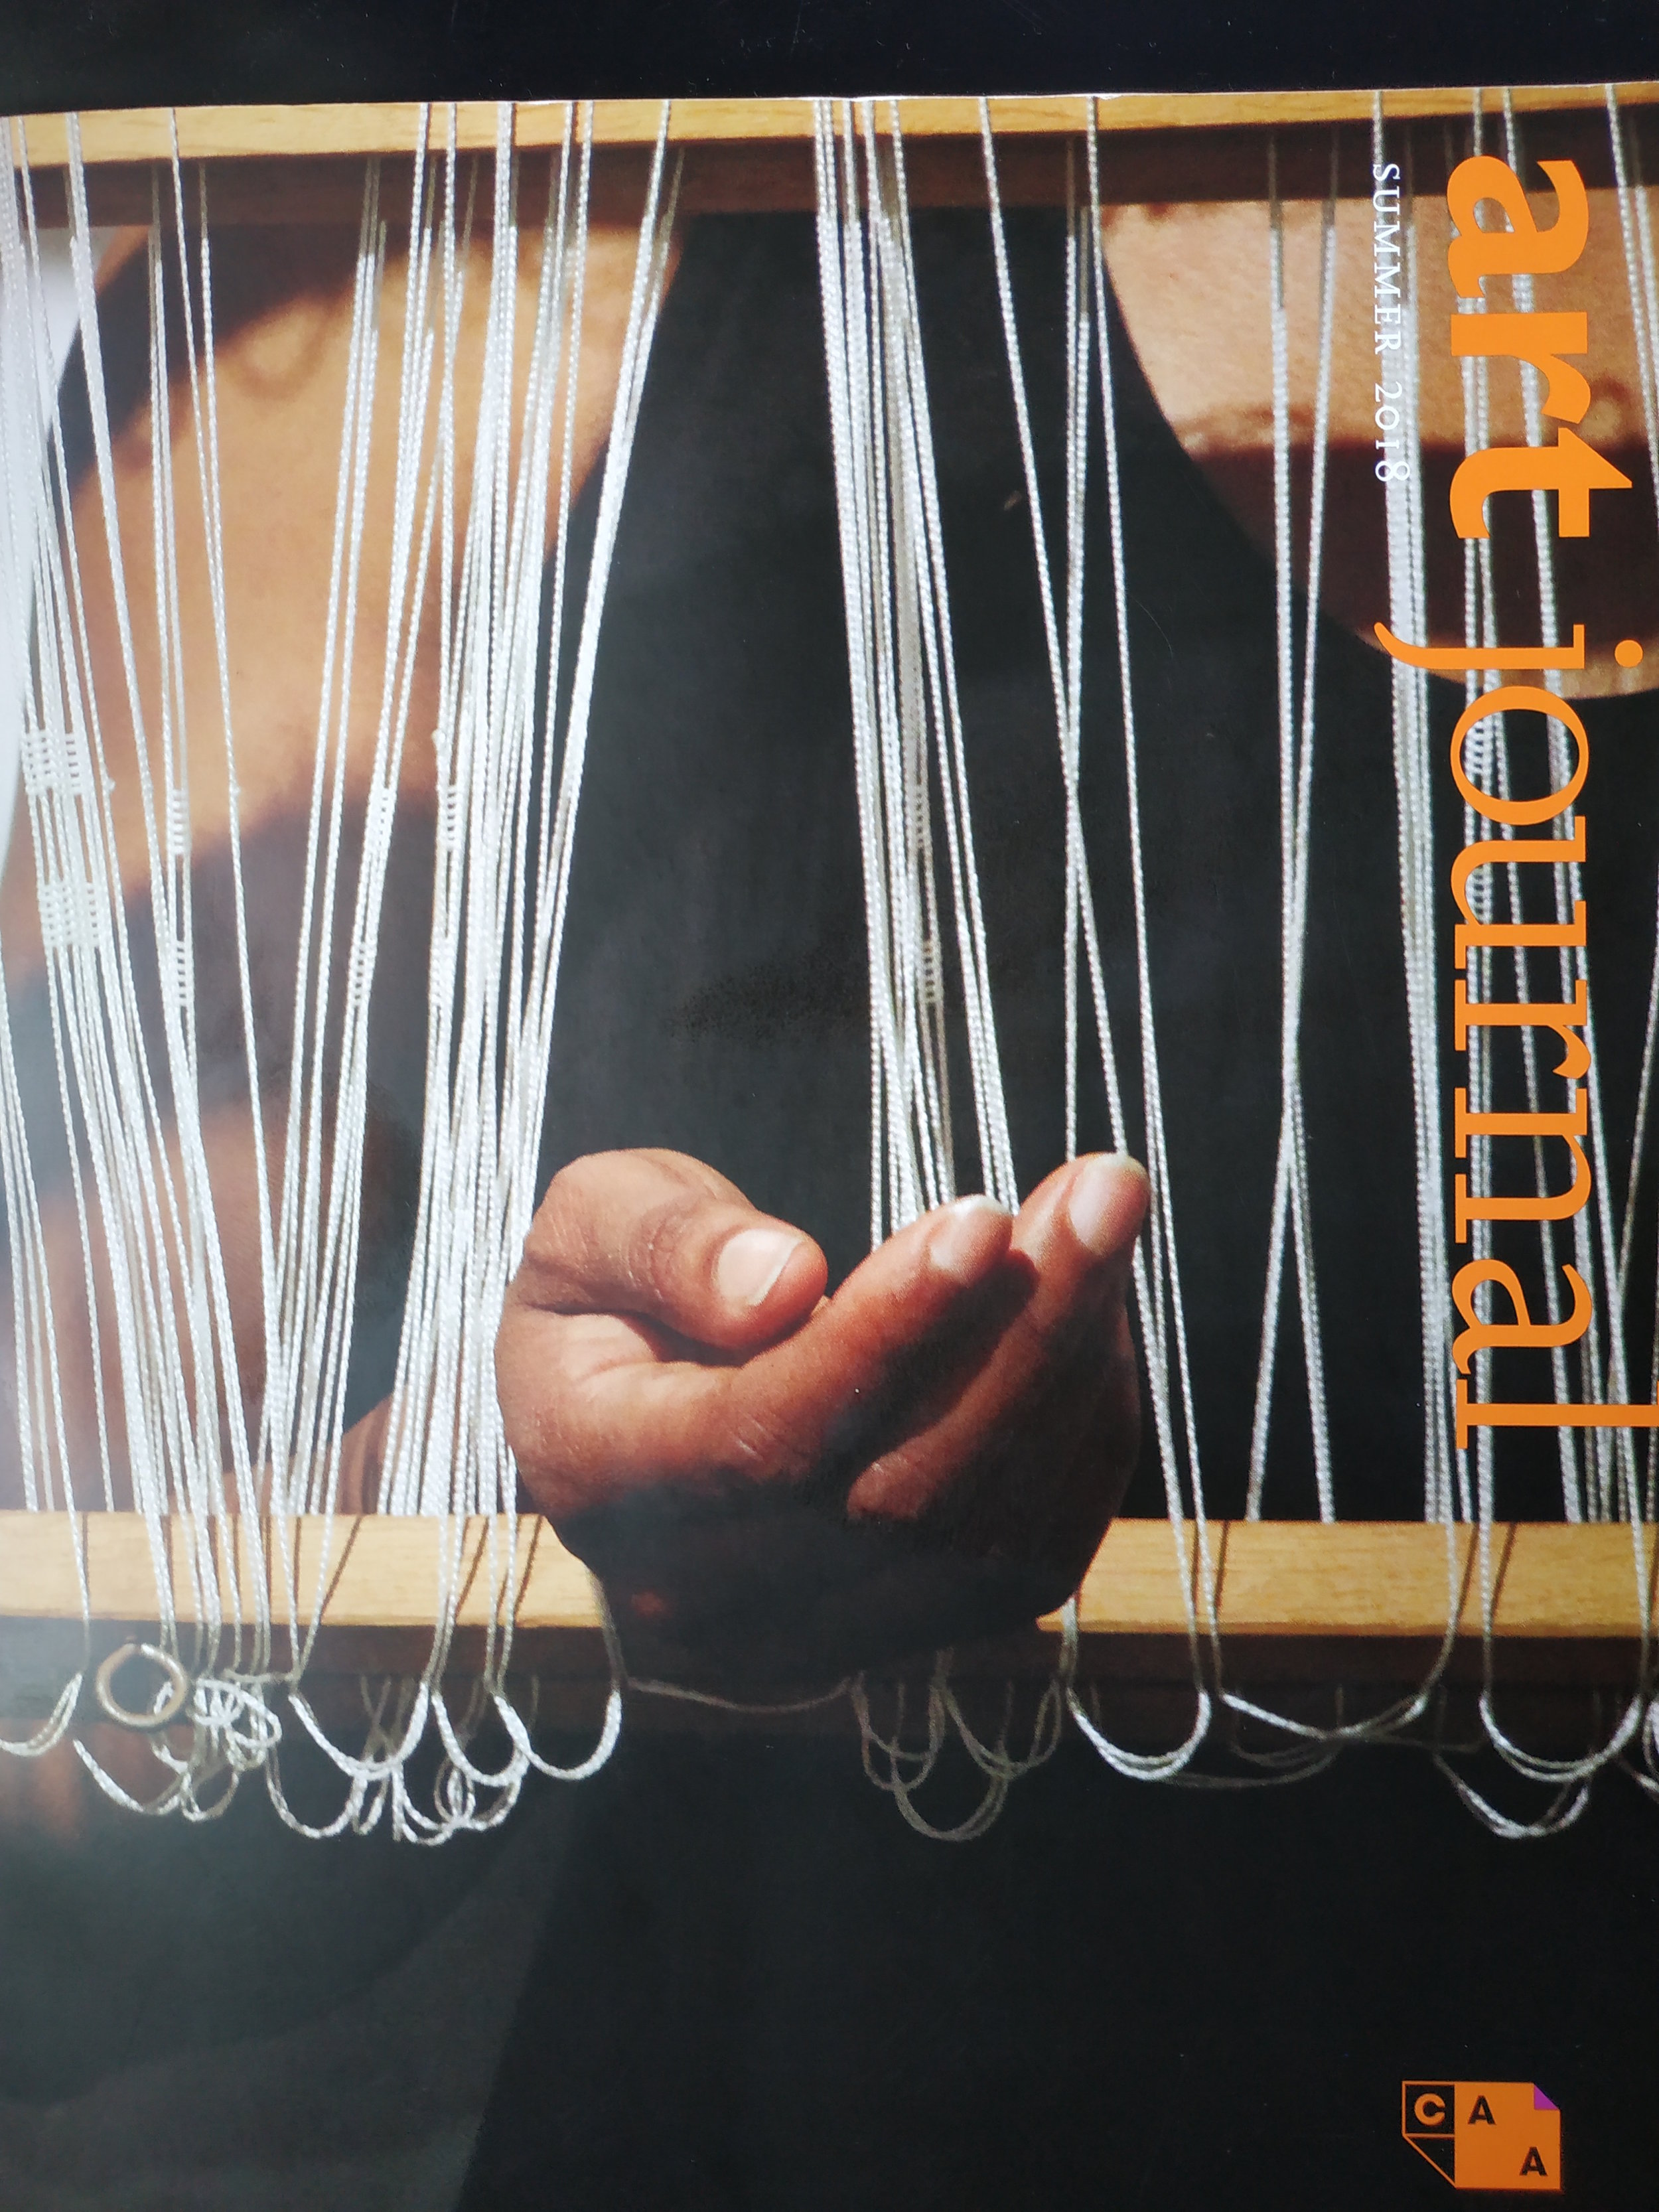 Indira Allegra ( collaboration ) - BODYWARP: Doublecloth - weaving as performance art using historical and emotional tension as material.